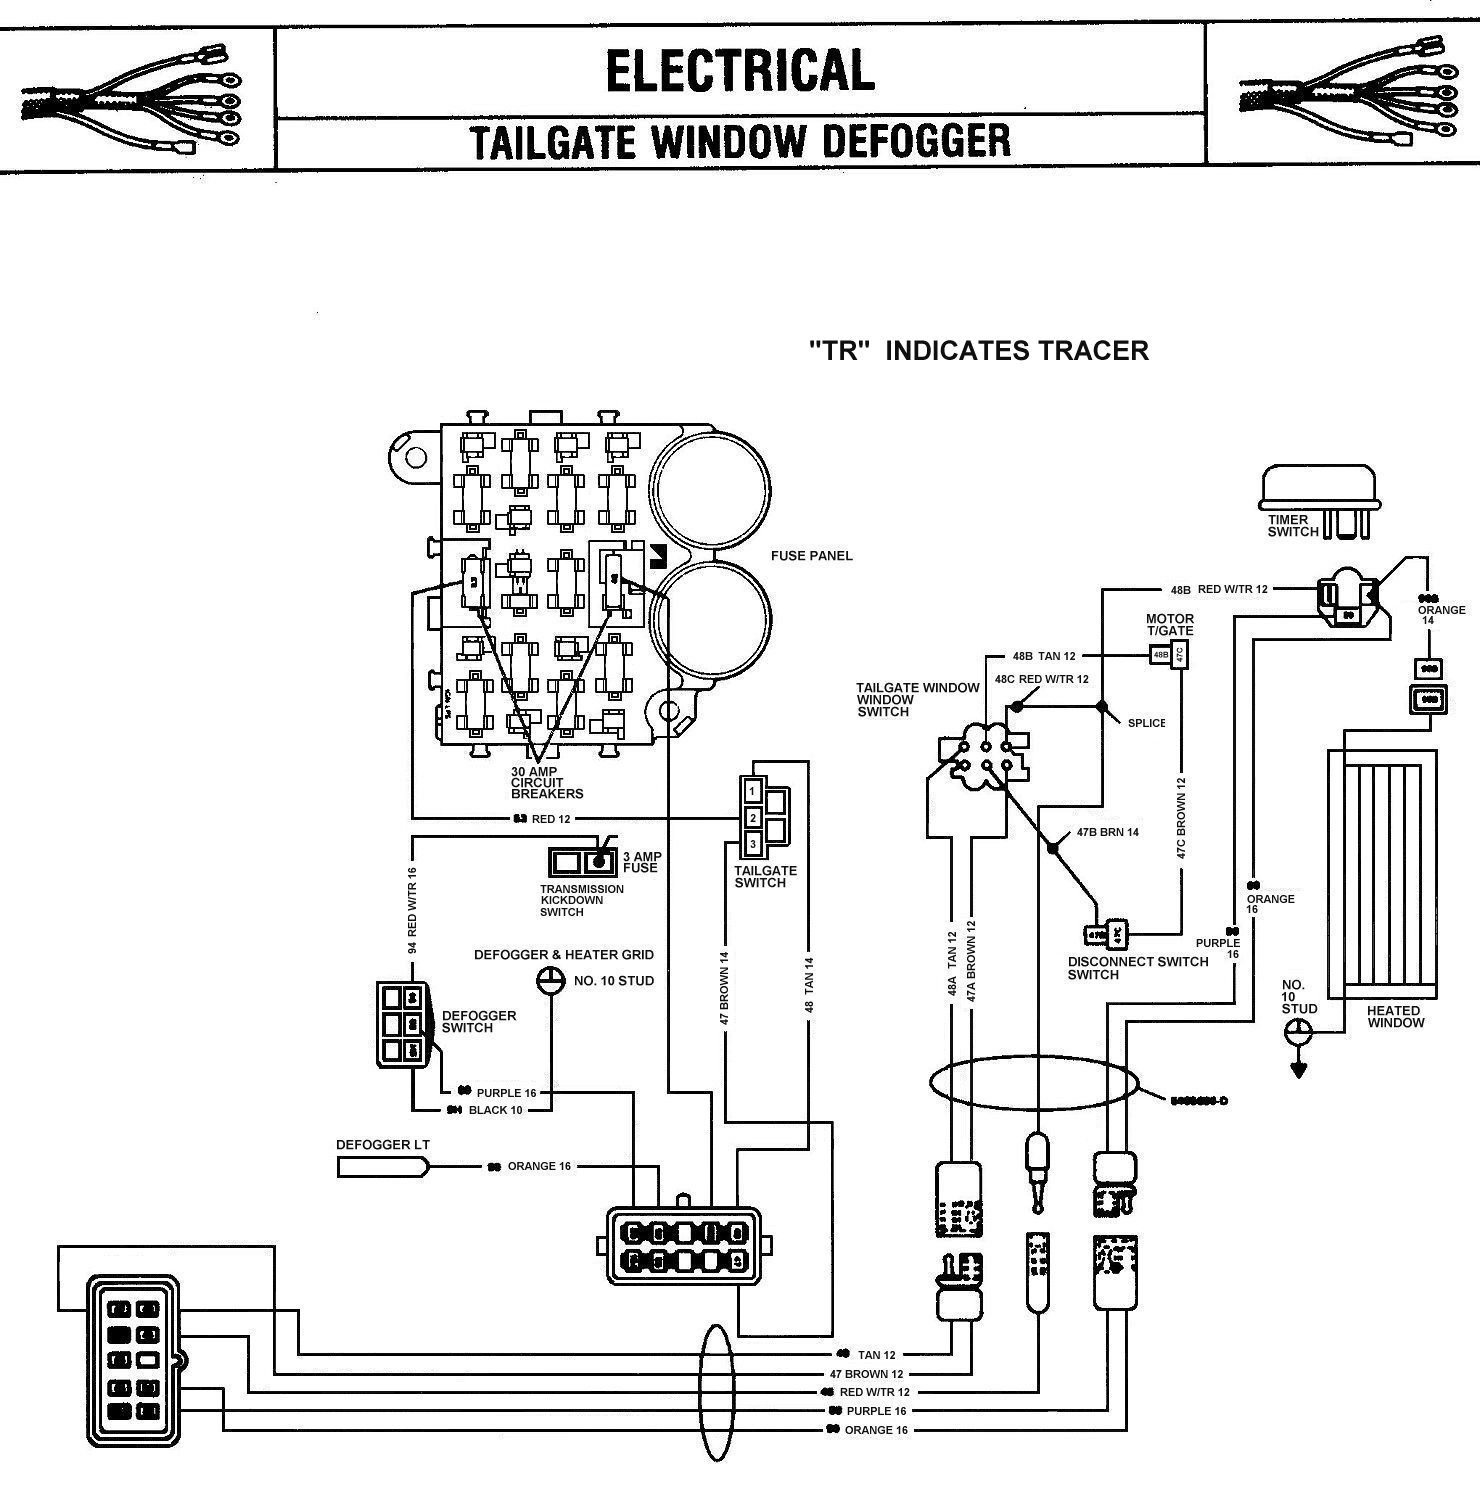 [DIAGRAM_38EU]  Tom 'Oljeep' Collins FSJ Wiring Page | Wiring Diagram For 87 Grand Wagoneer |  | Oljeep